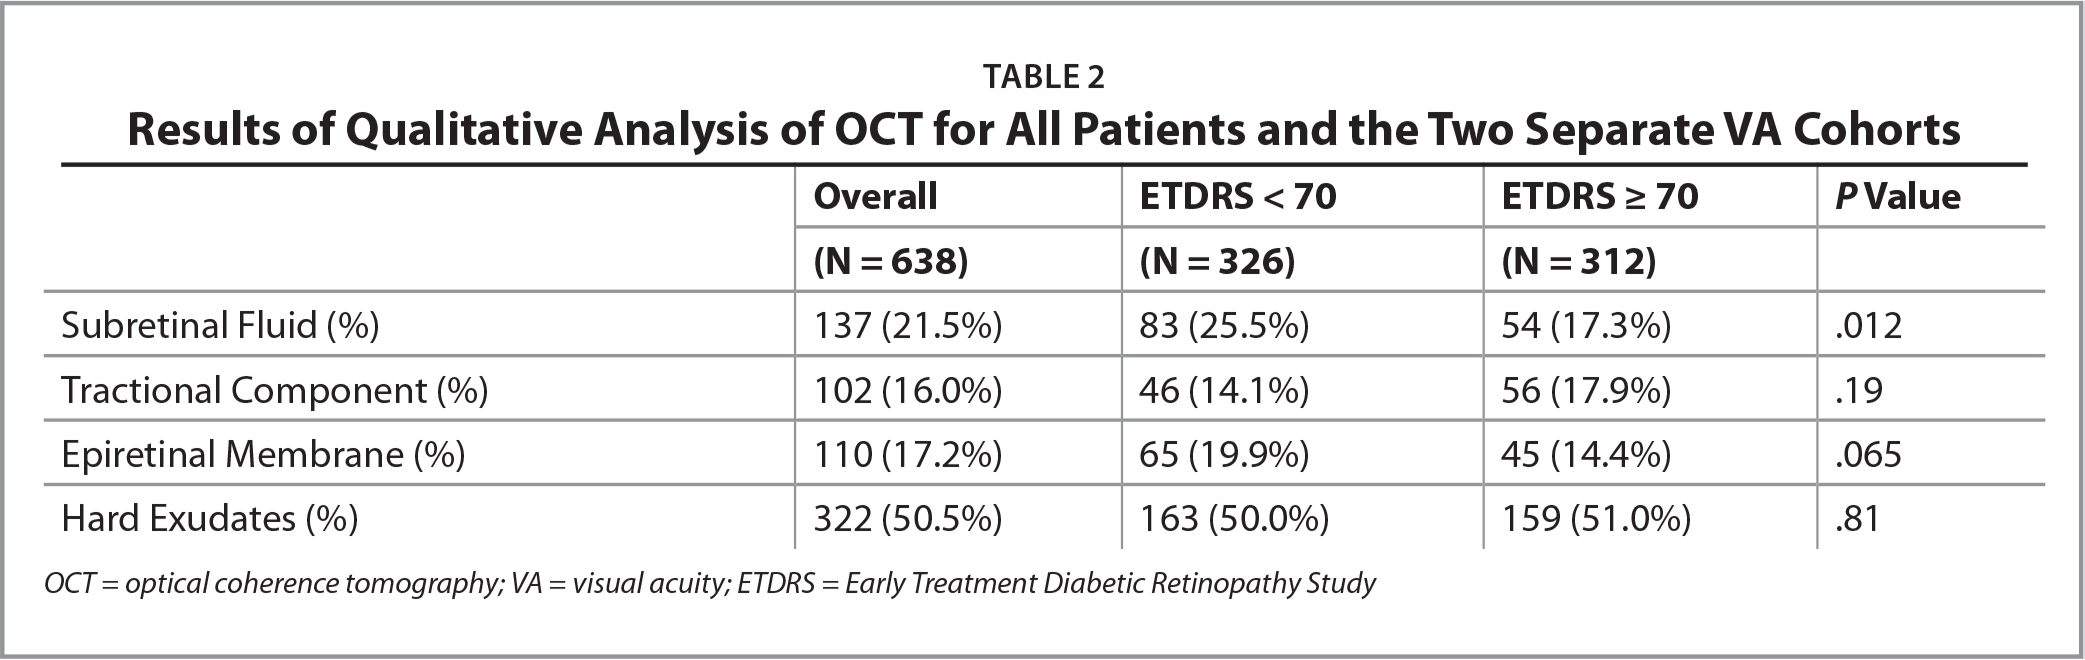 Results of Qualitative Analysis of OCT for All Patients and the Two Separate VA Cohorts